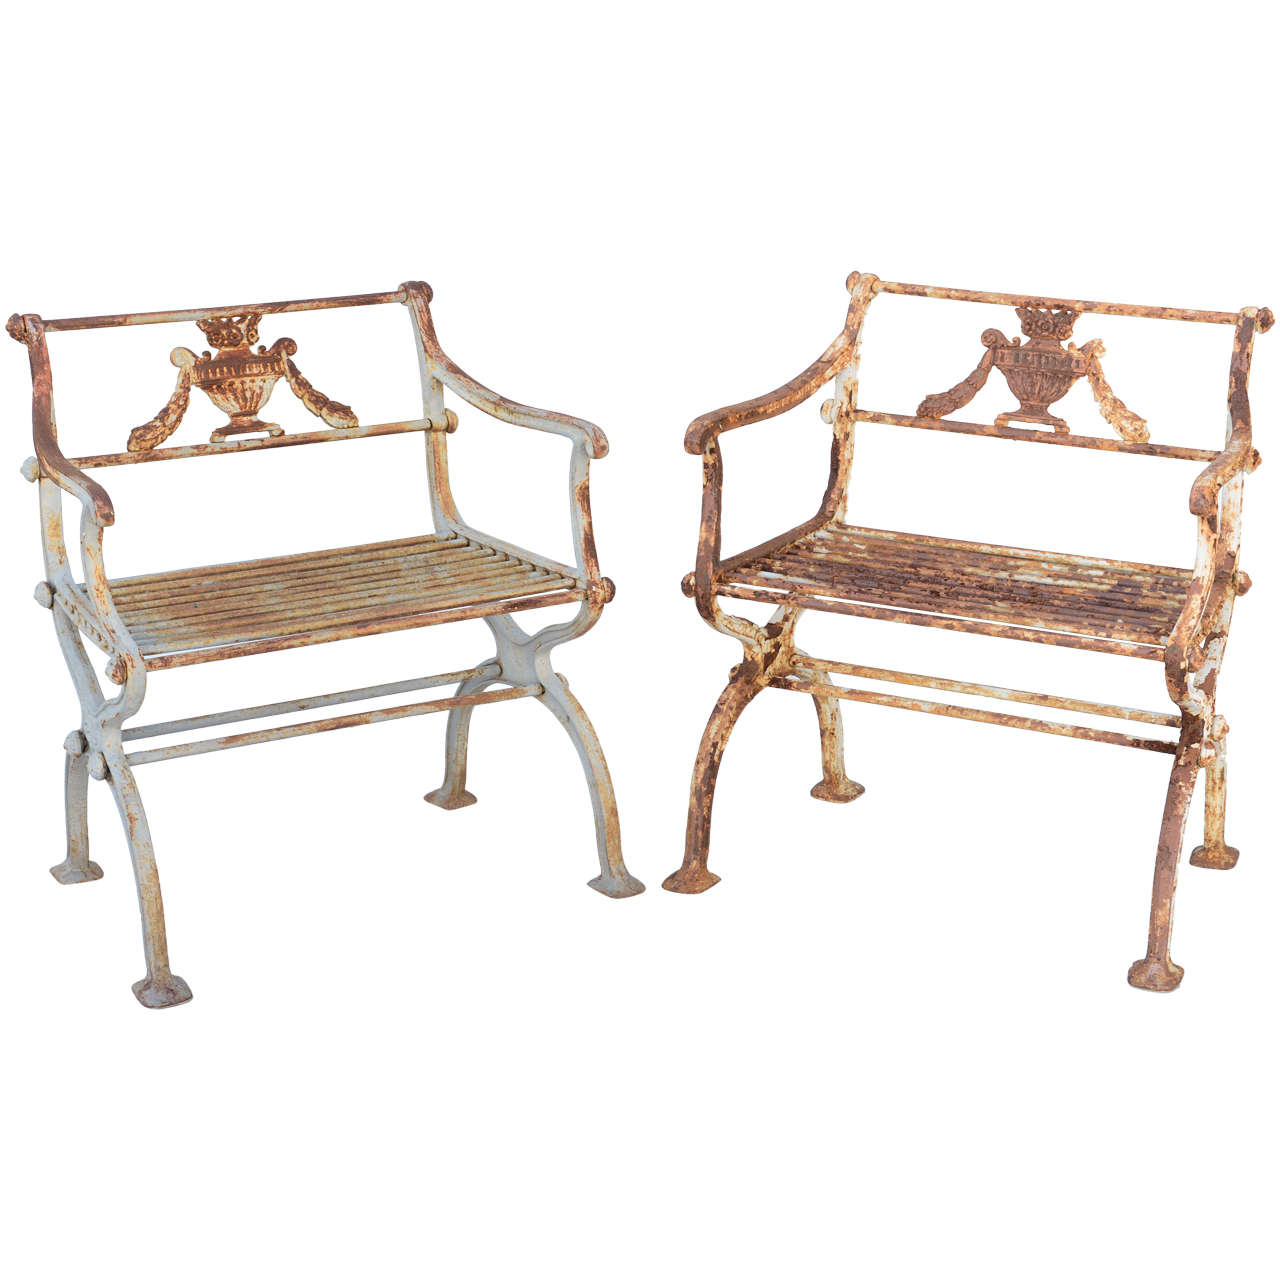 Pair of 19th Century Iron Garden Chairs by Karl Friedrich Schinkel For Sale